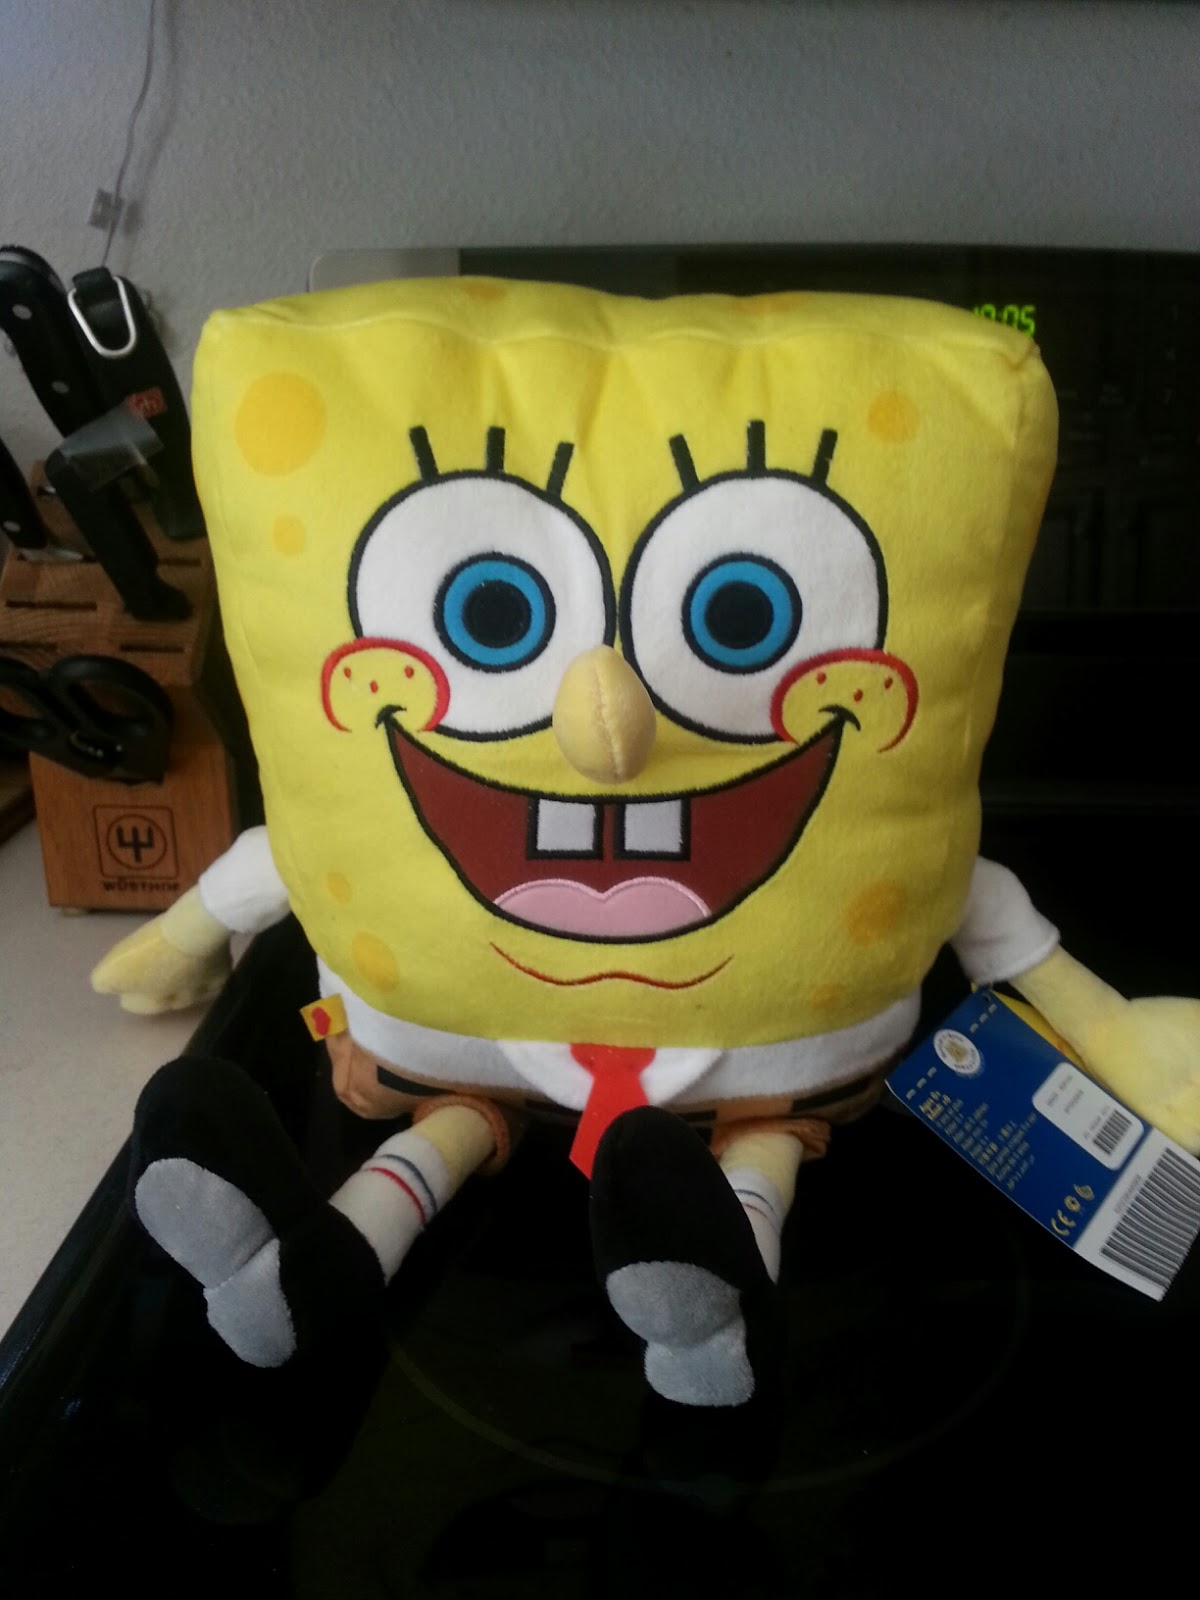 Grammy2kaiden Make A New Spongebob Friend Theus Waxvac When Arrived At My House He Was Tucked Aside Until The 5 Year Old Home Walked In Door And Poor Little All Away